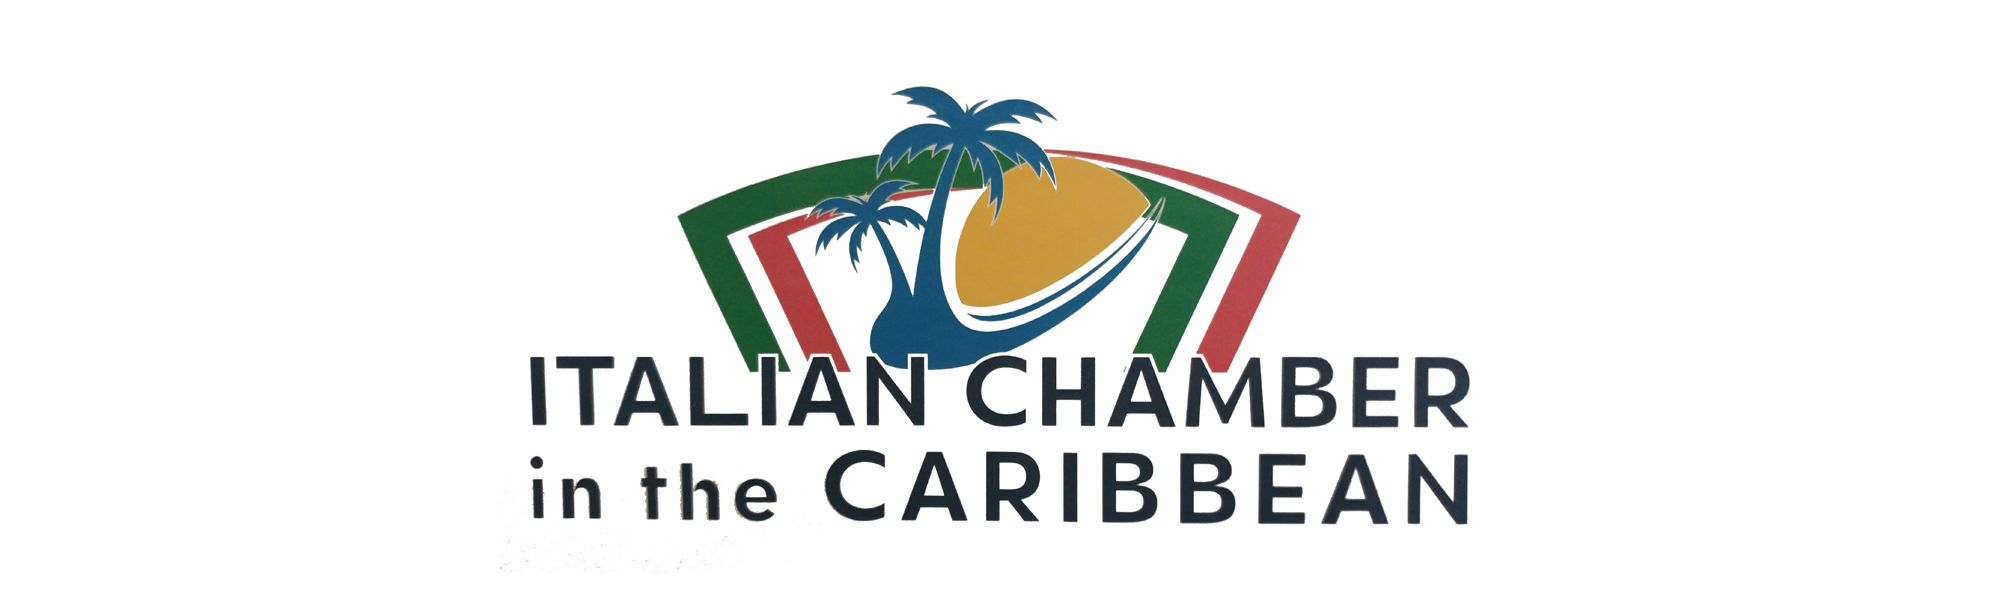 Italian Chamber in the Caribbean